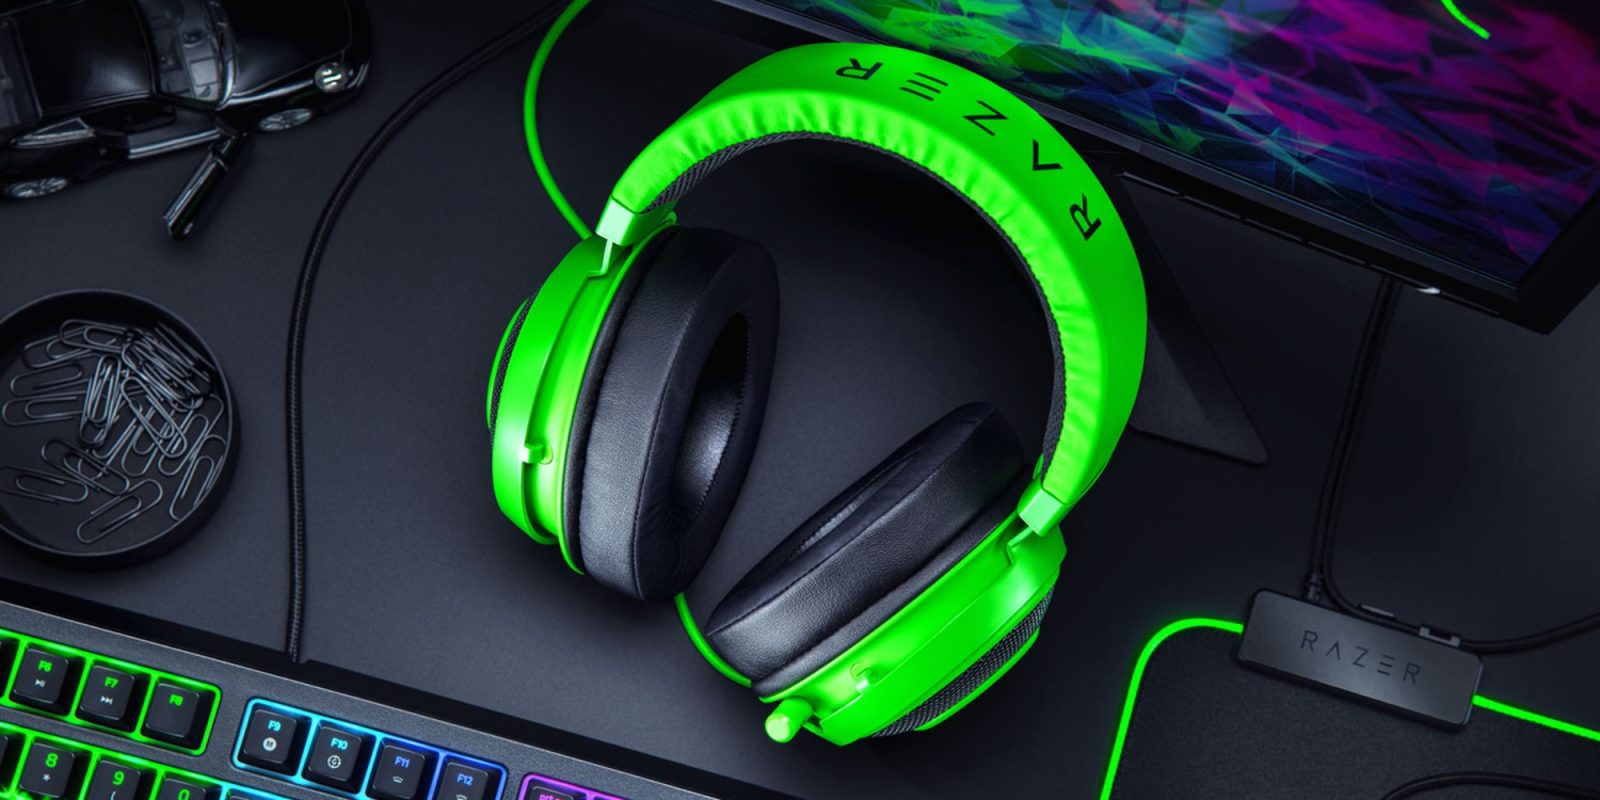 Razer's new 2019-edition Kraken Gaming Headset drops to $60 (25% off), more